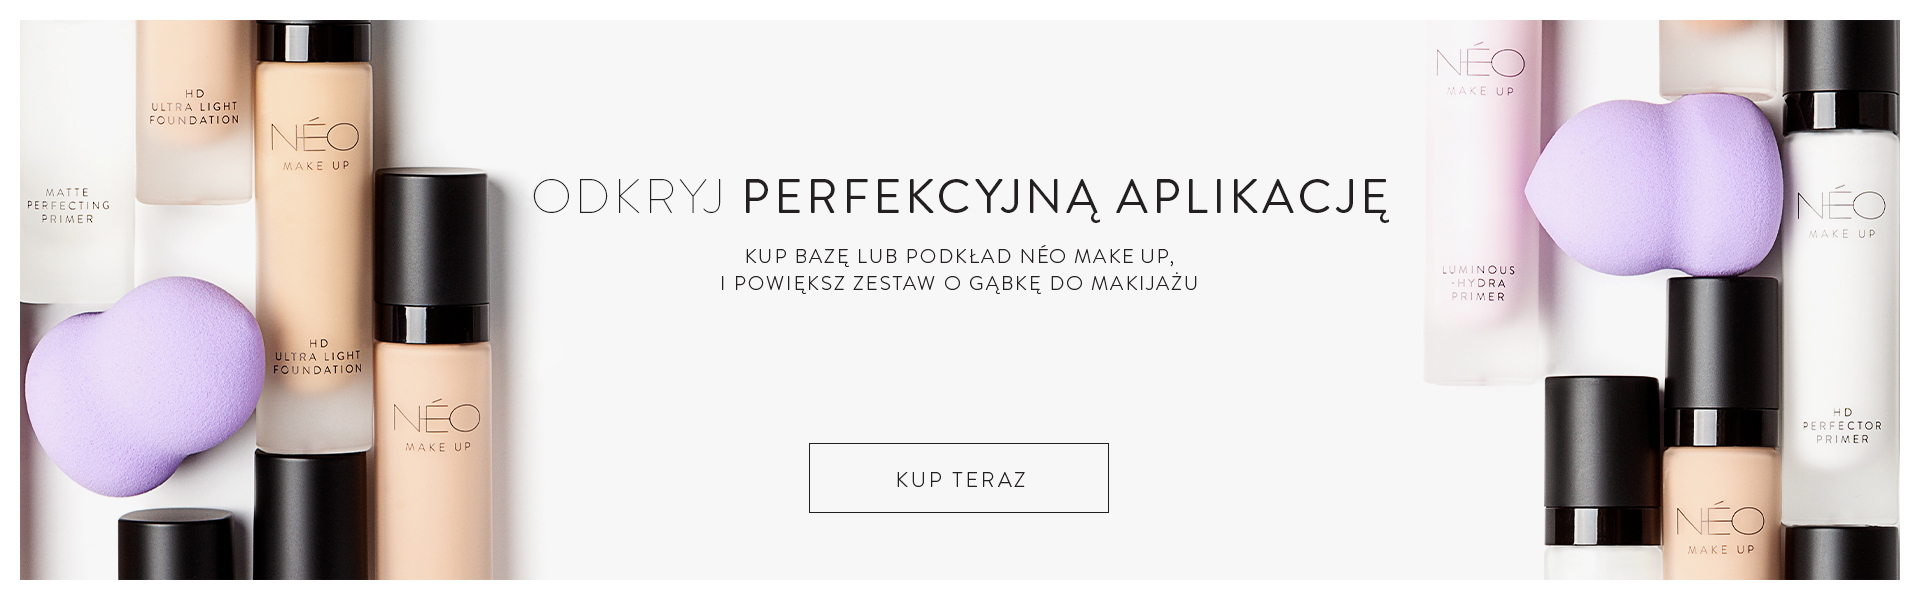 Gąbka do makijażu od NEO Make Up w prezencie